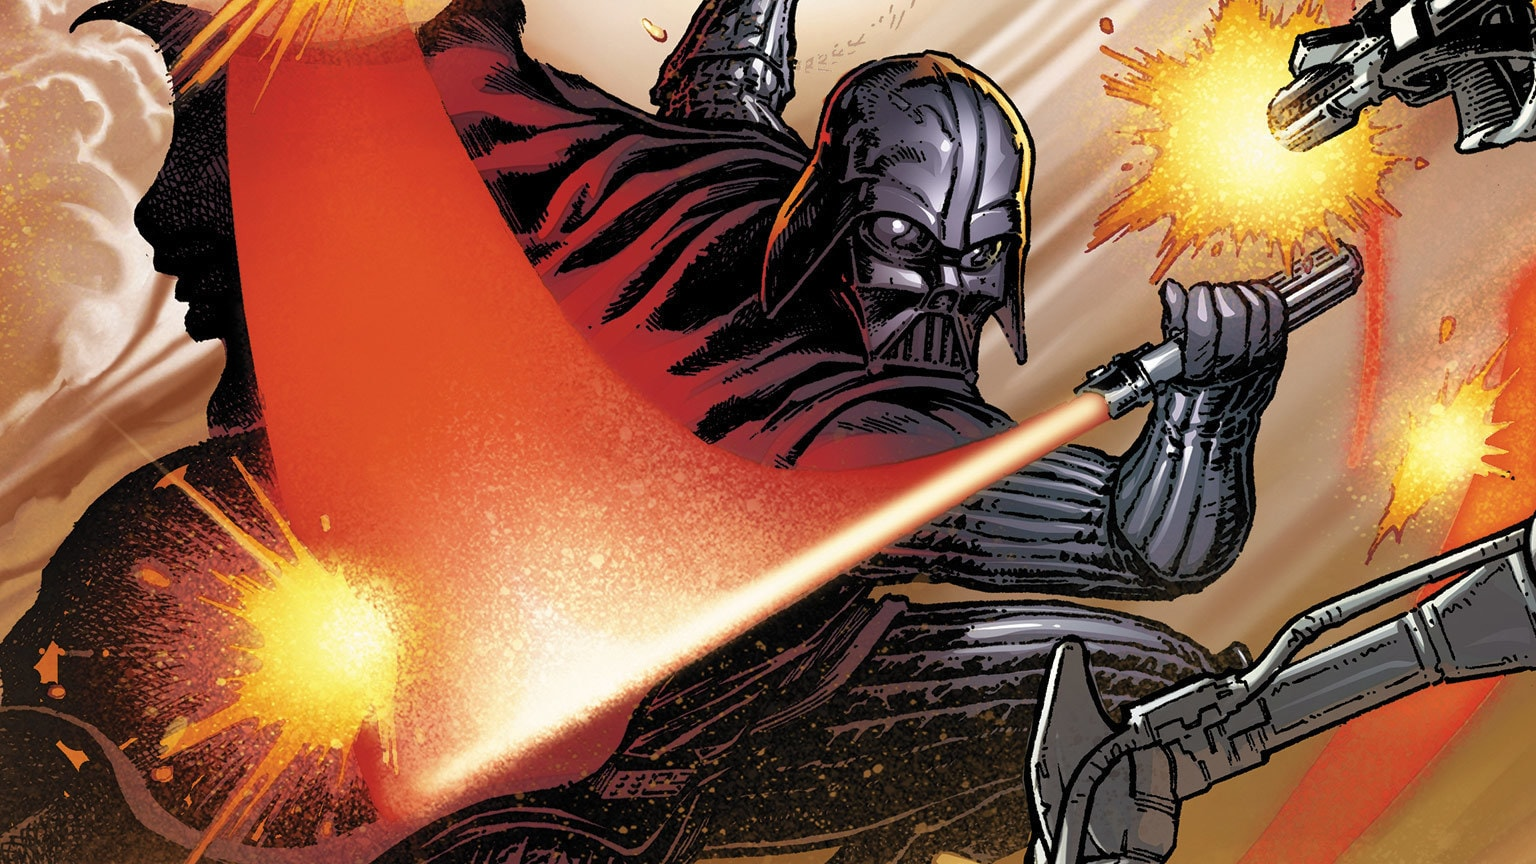 Darth Vader Takes on IG-88 in Marvel's Star Wars: Darth Vader #13 – Exclusive Preview